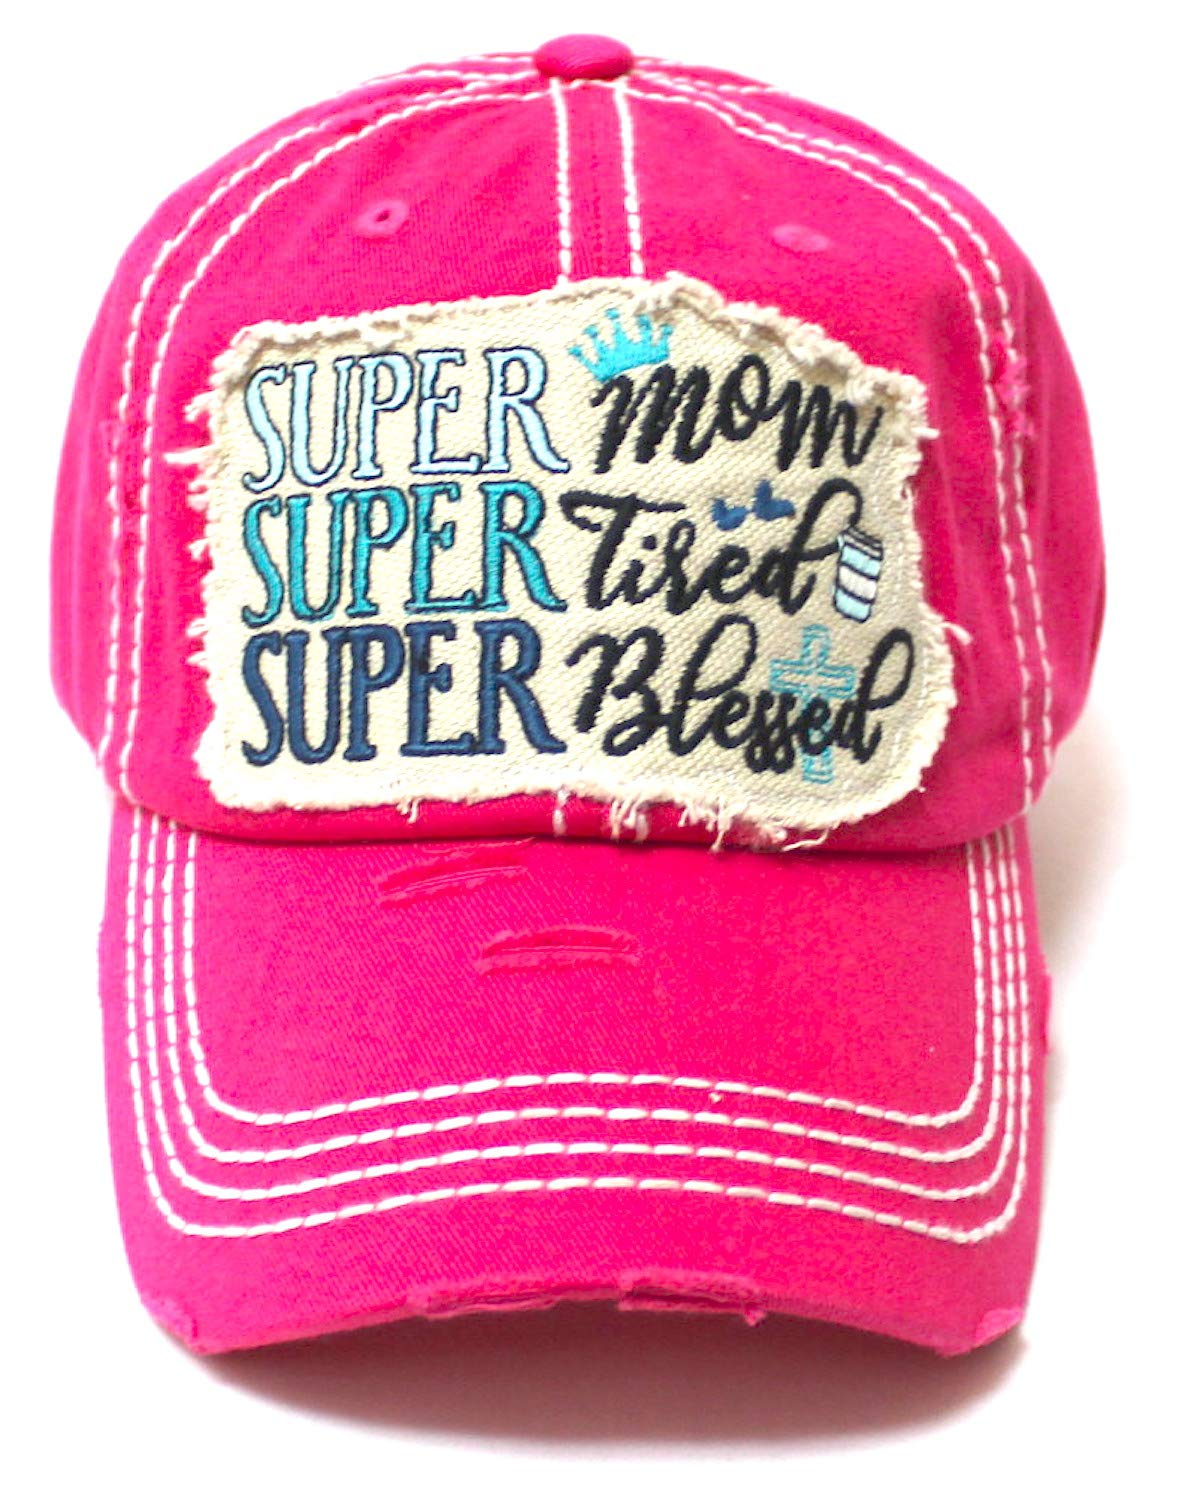 CAPS 'N VINTAGE Women's Baseball Cap Super Mom, Super Tired, Super Blessed Patch Embroidery Hat, Hot Pink